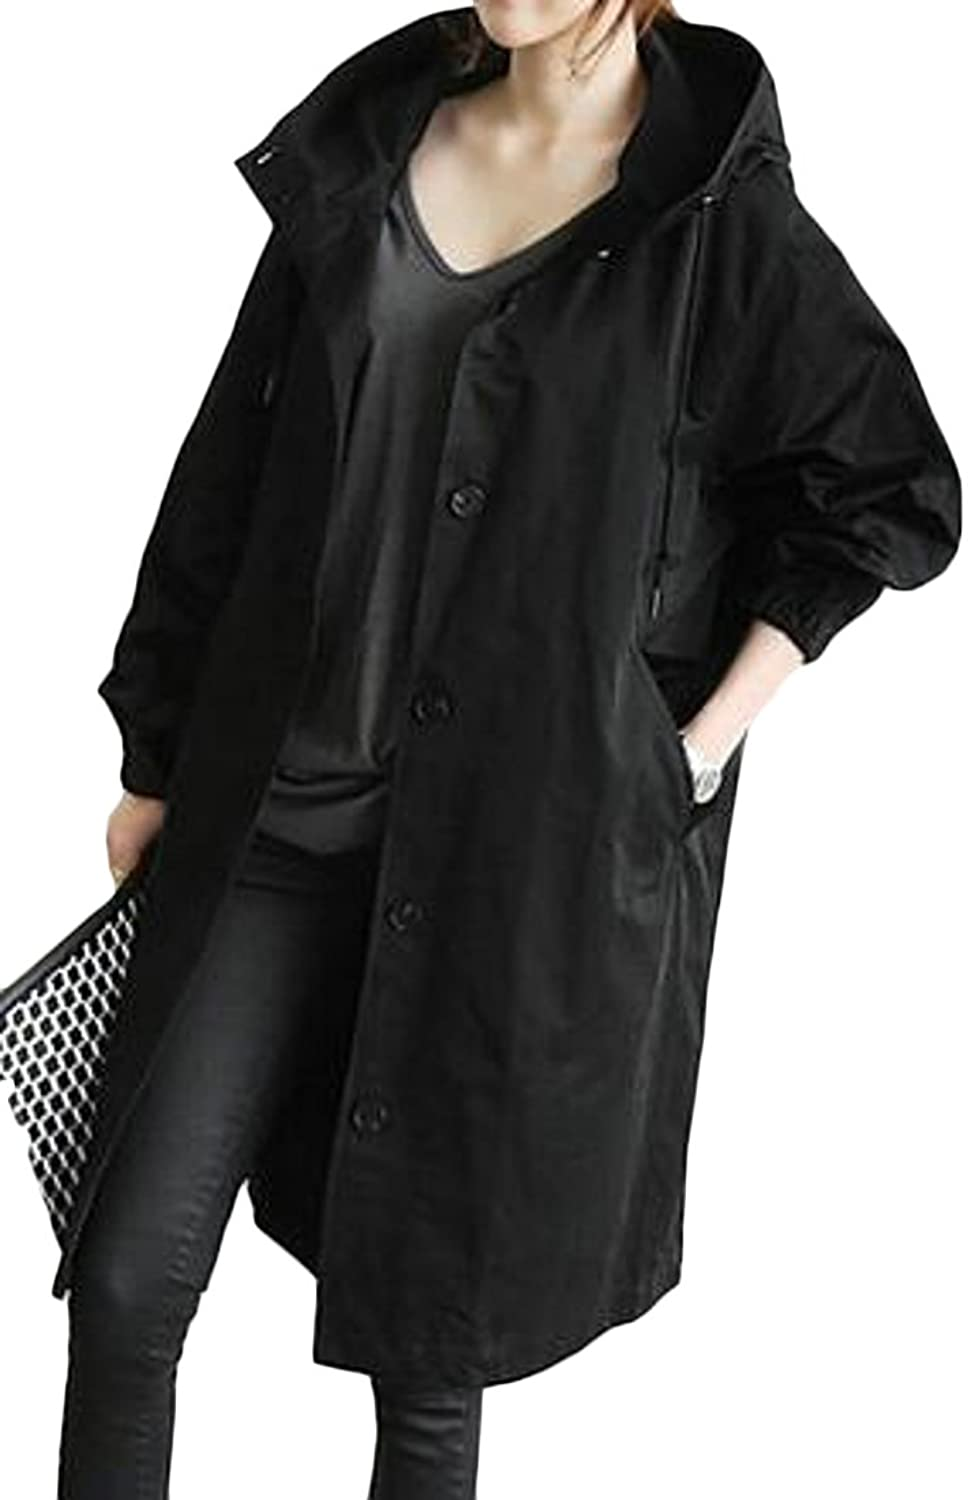 ARRIVE GUIDE Women's Casual Single-Breasted Hooded Oversized Trench Coats